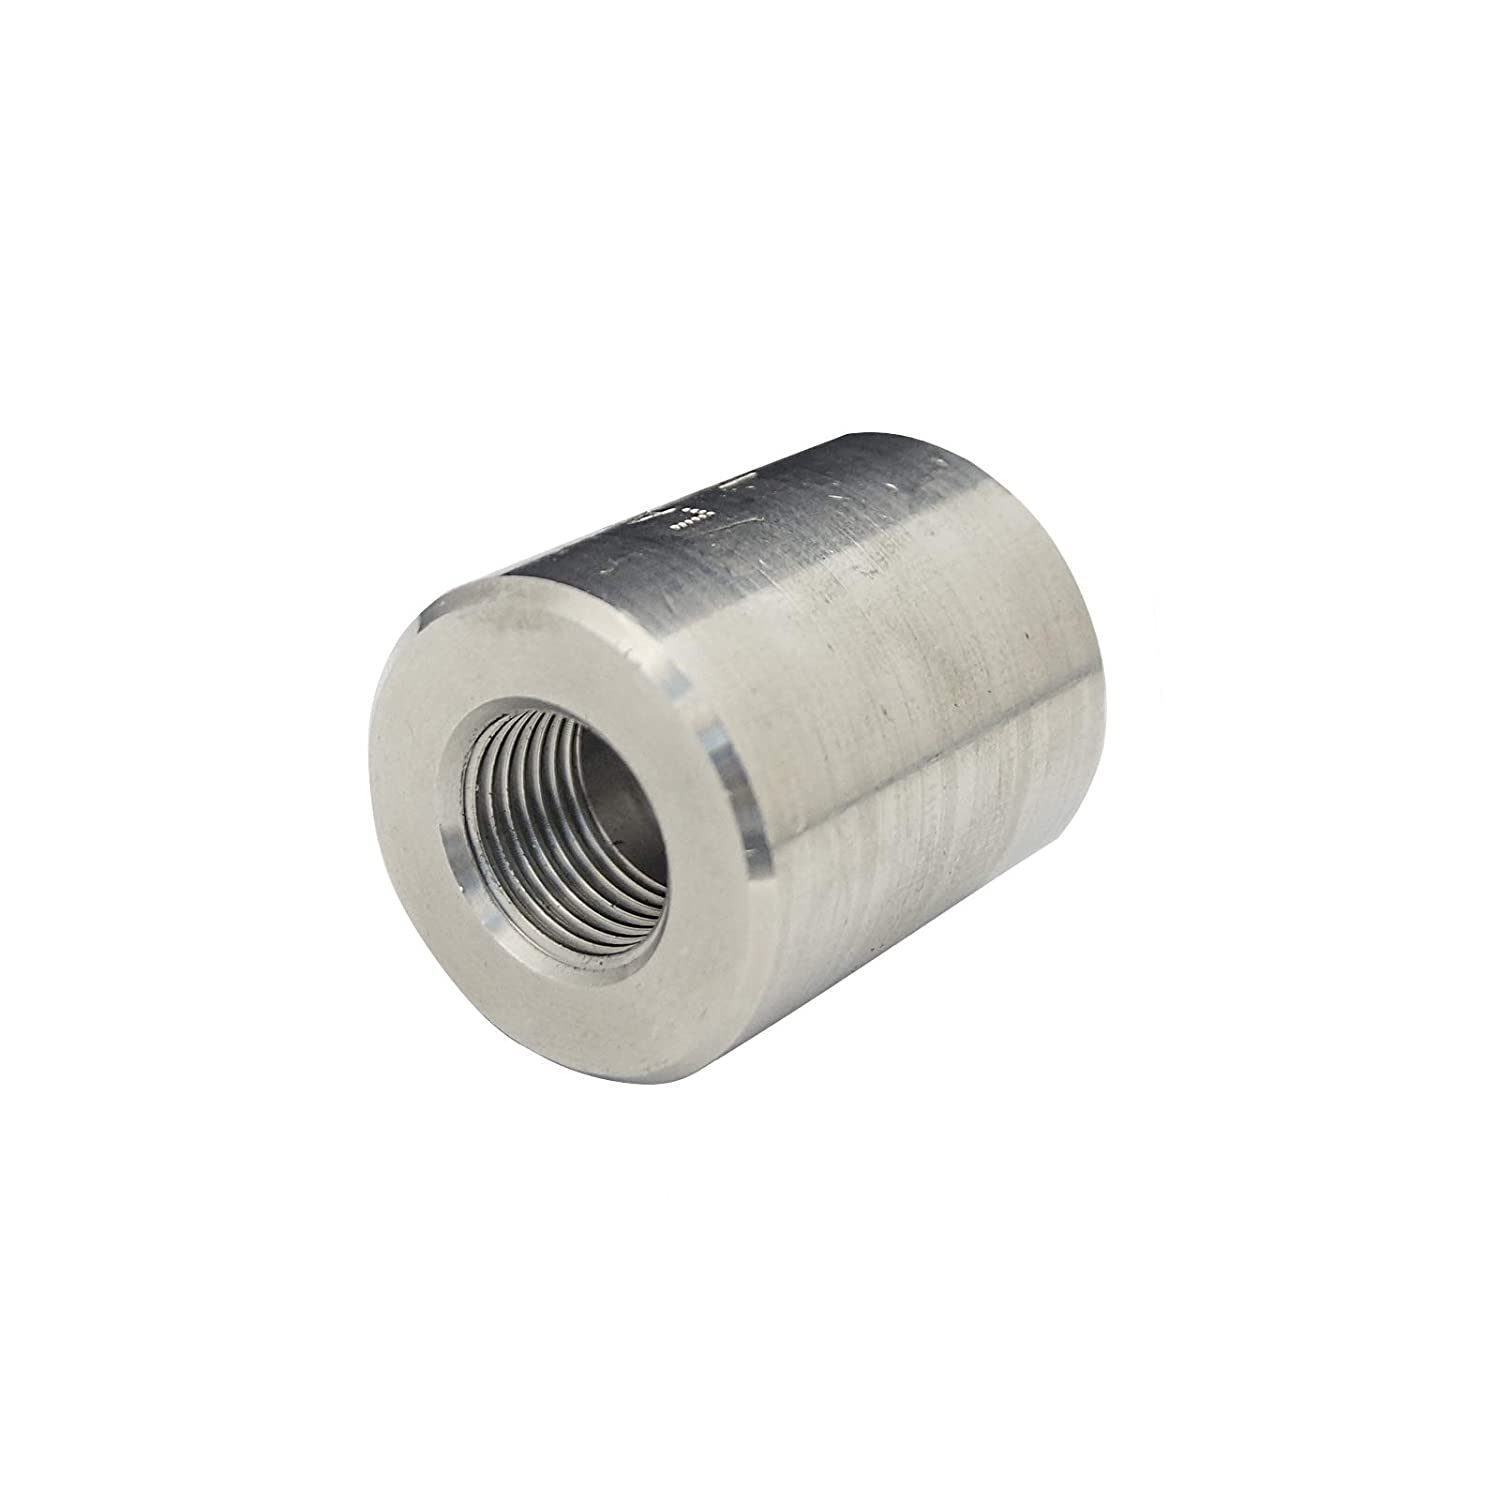 Stainless Steel 316 Forged Pipe Fitting, Reduced Full Coupling, 1 1/2